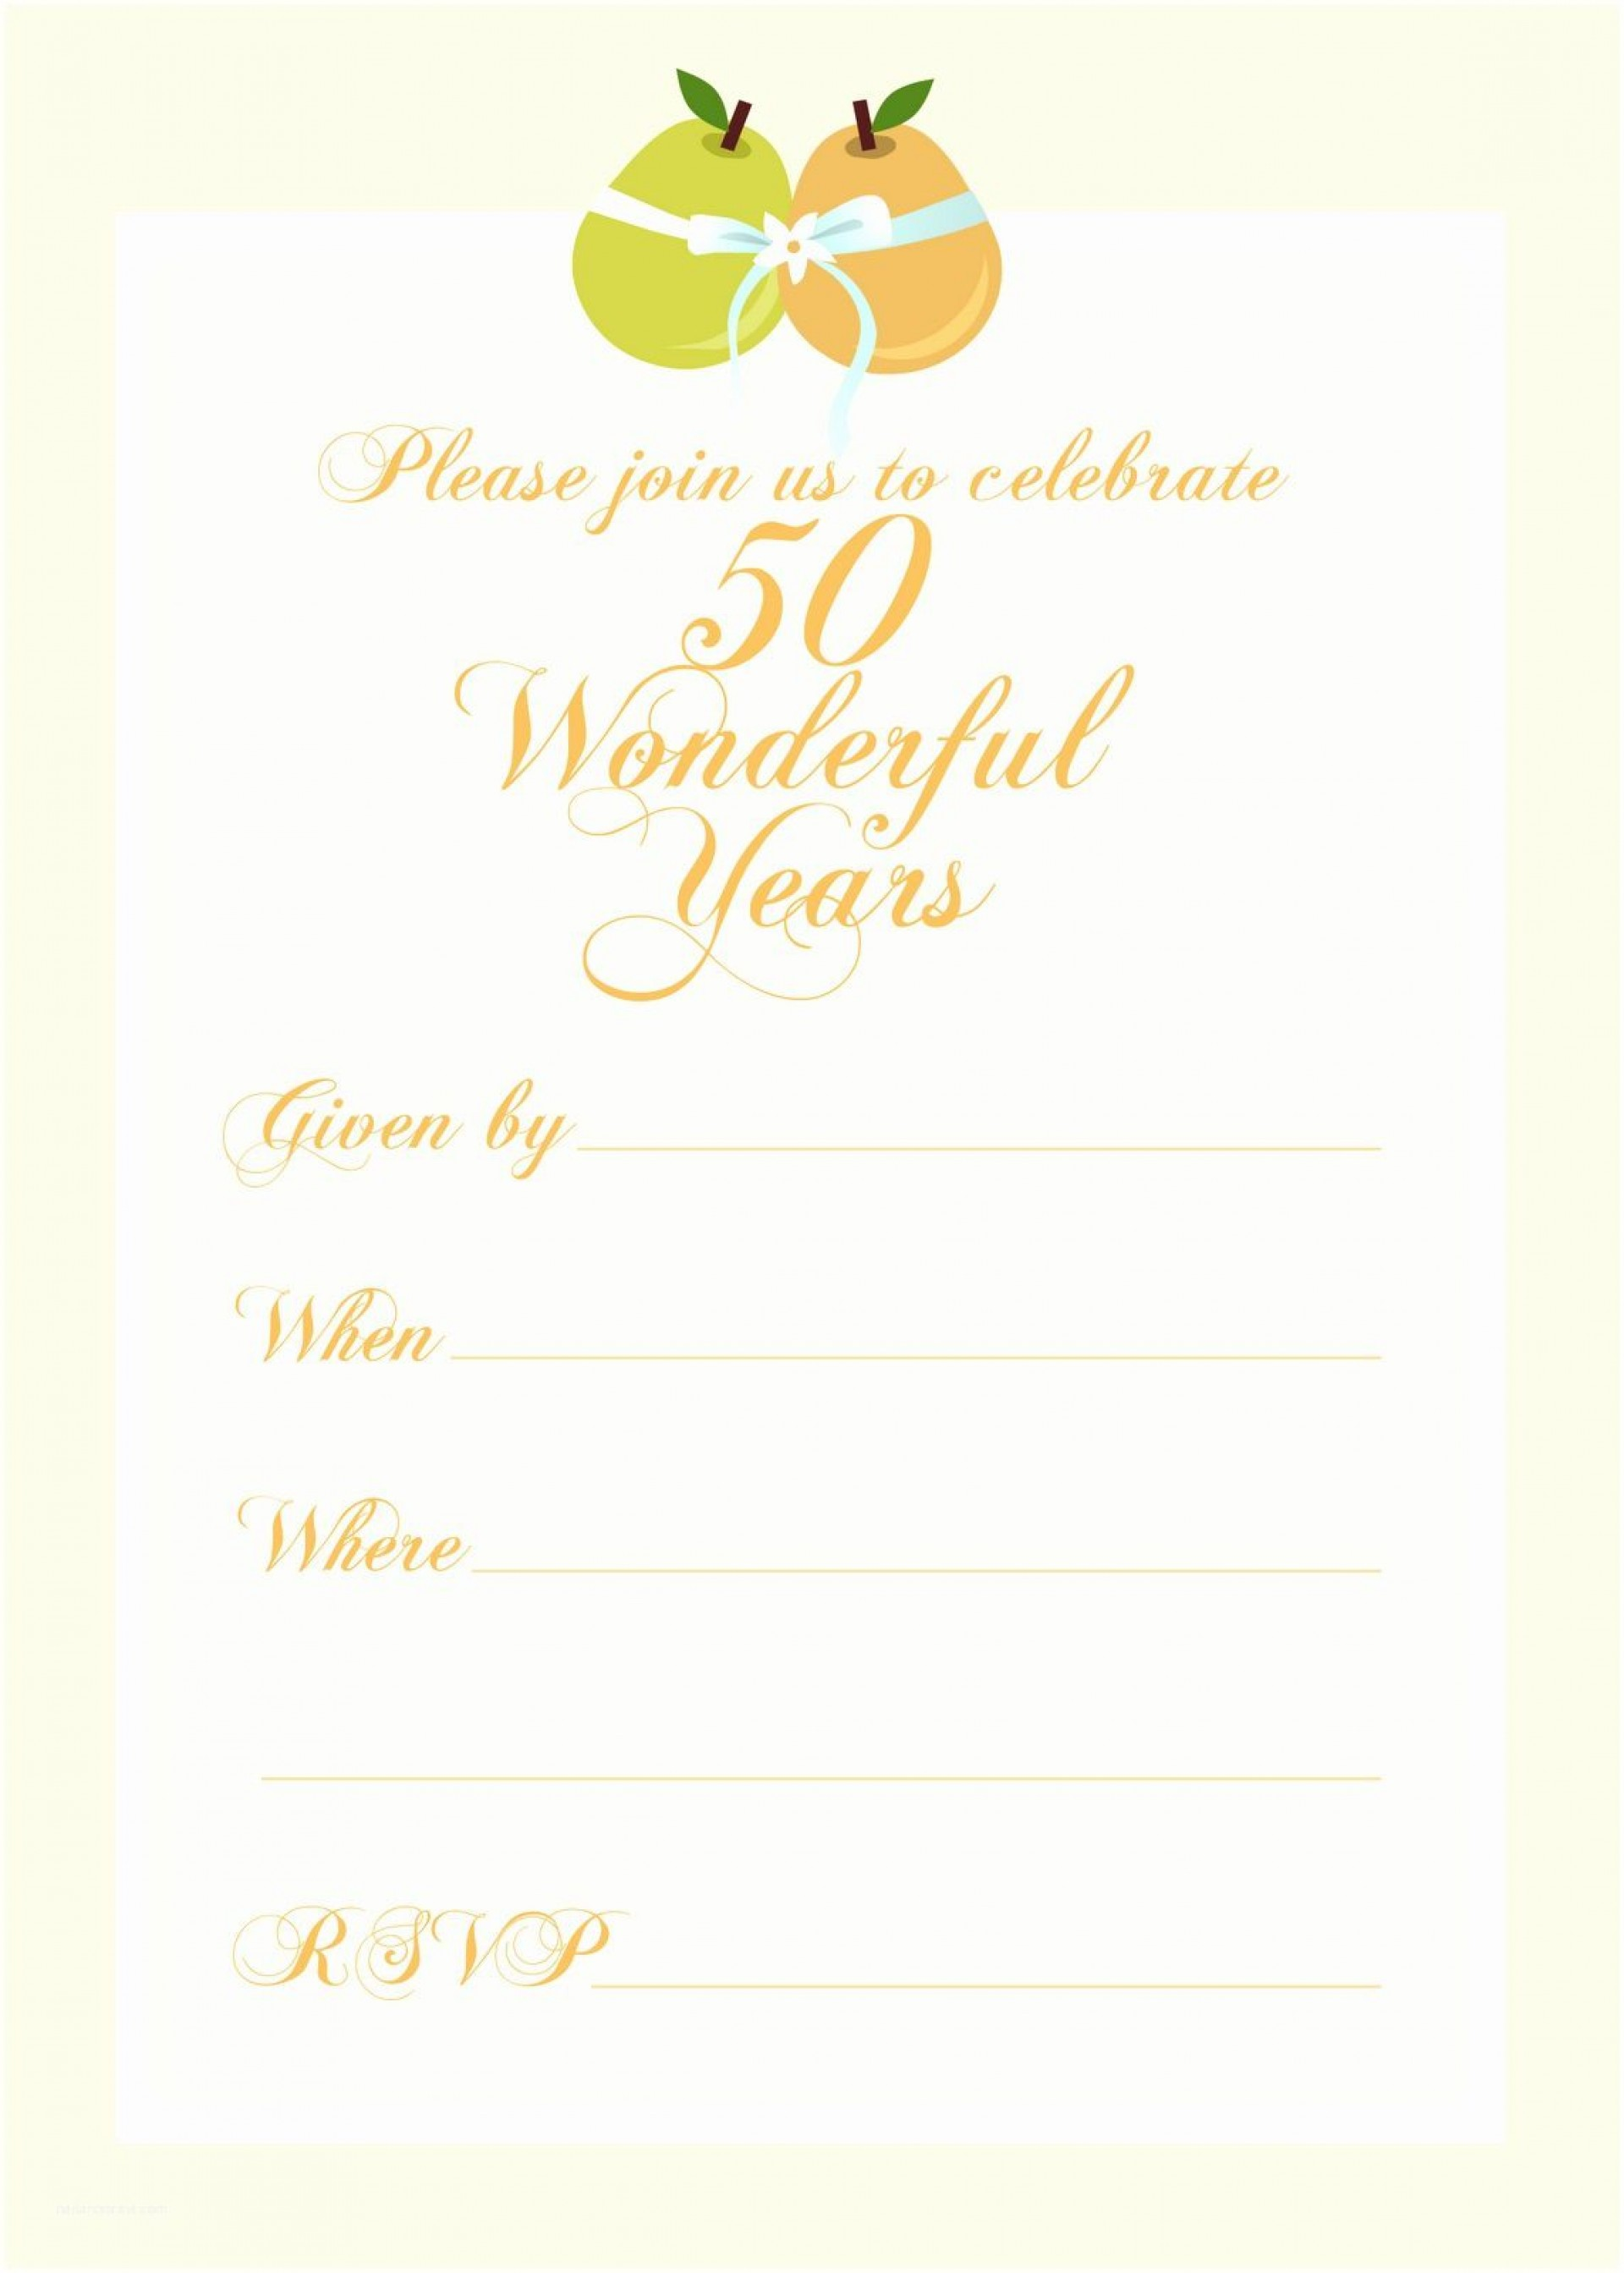 006 Excellent 50th Anniversary Invitation Template Picture  Templates Wedding Free Download Golden1920